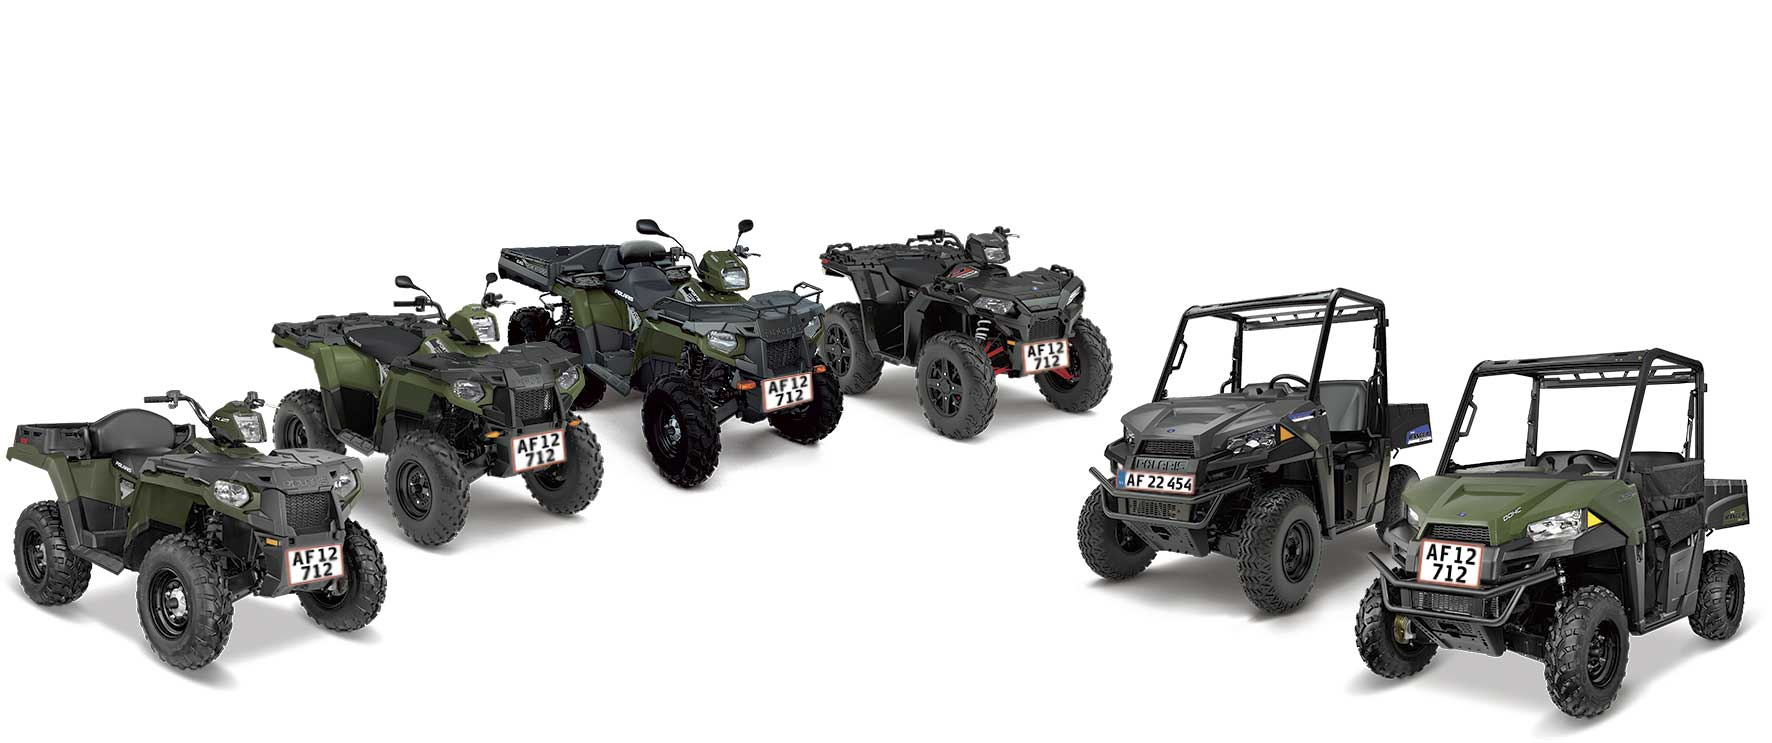 POLARIS ATV/UTV!